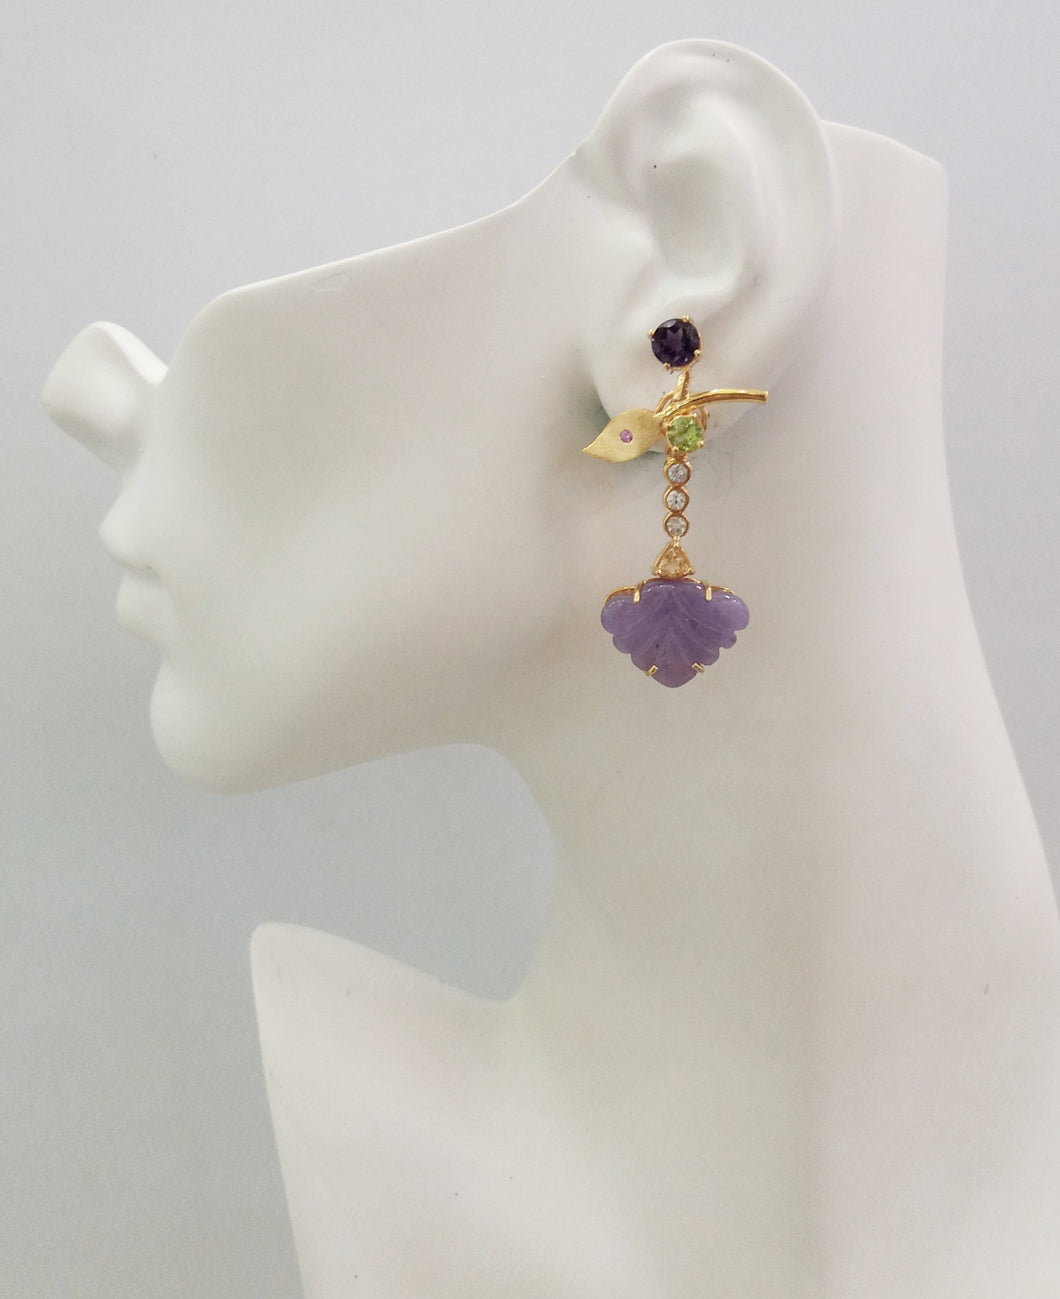 Amethyst with Peridot Leaf studs with White Topaz, Citrine & carved Amethyst Leaf Twinset Earrings